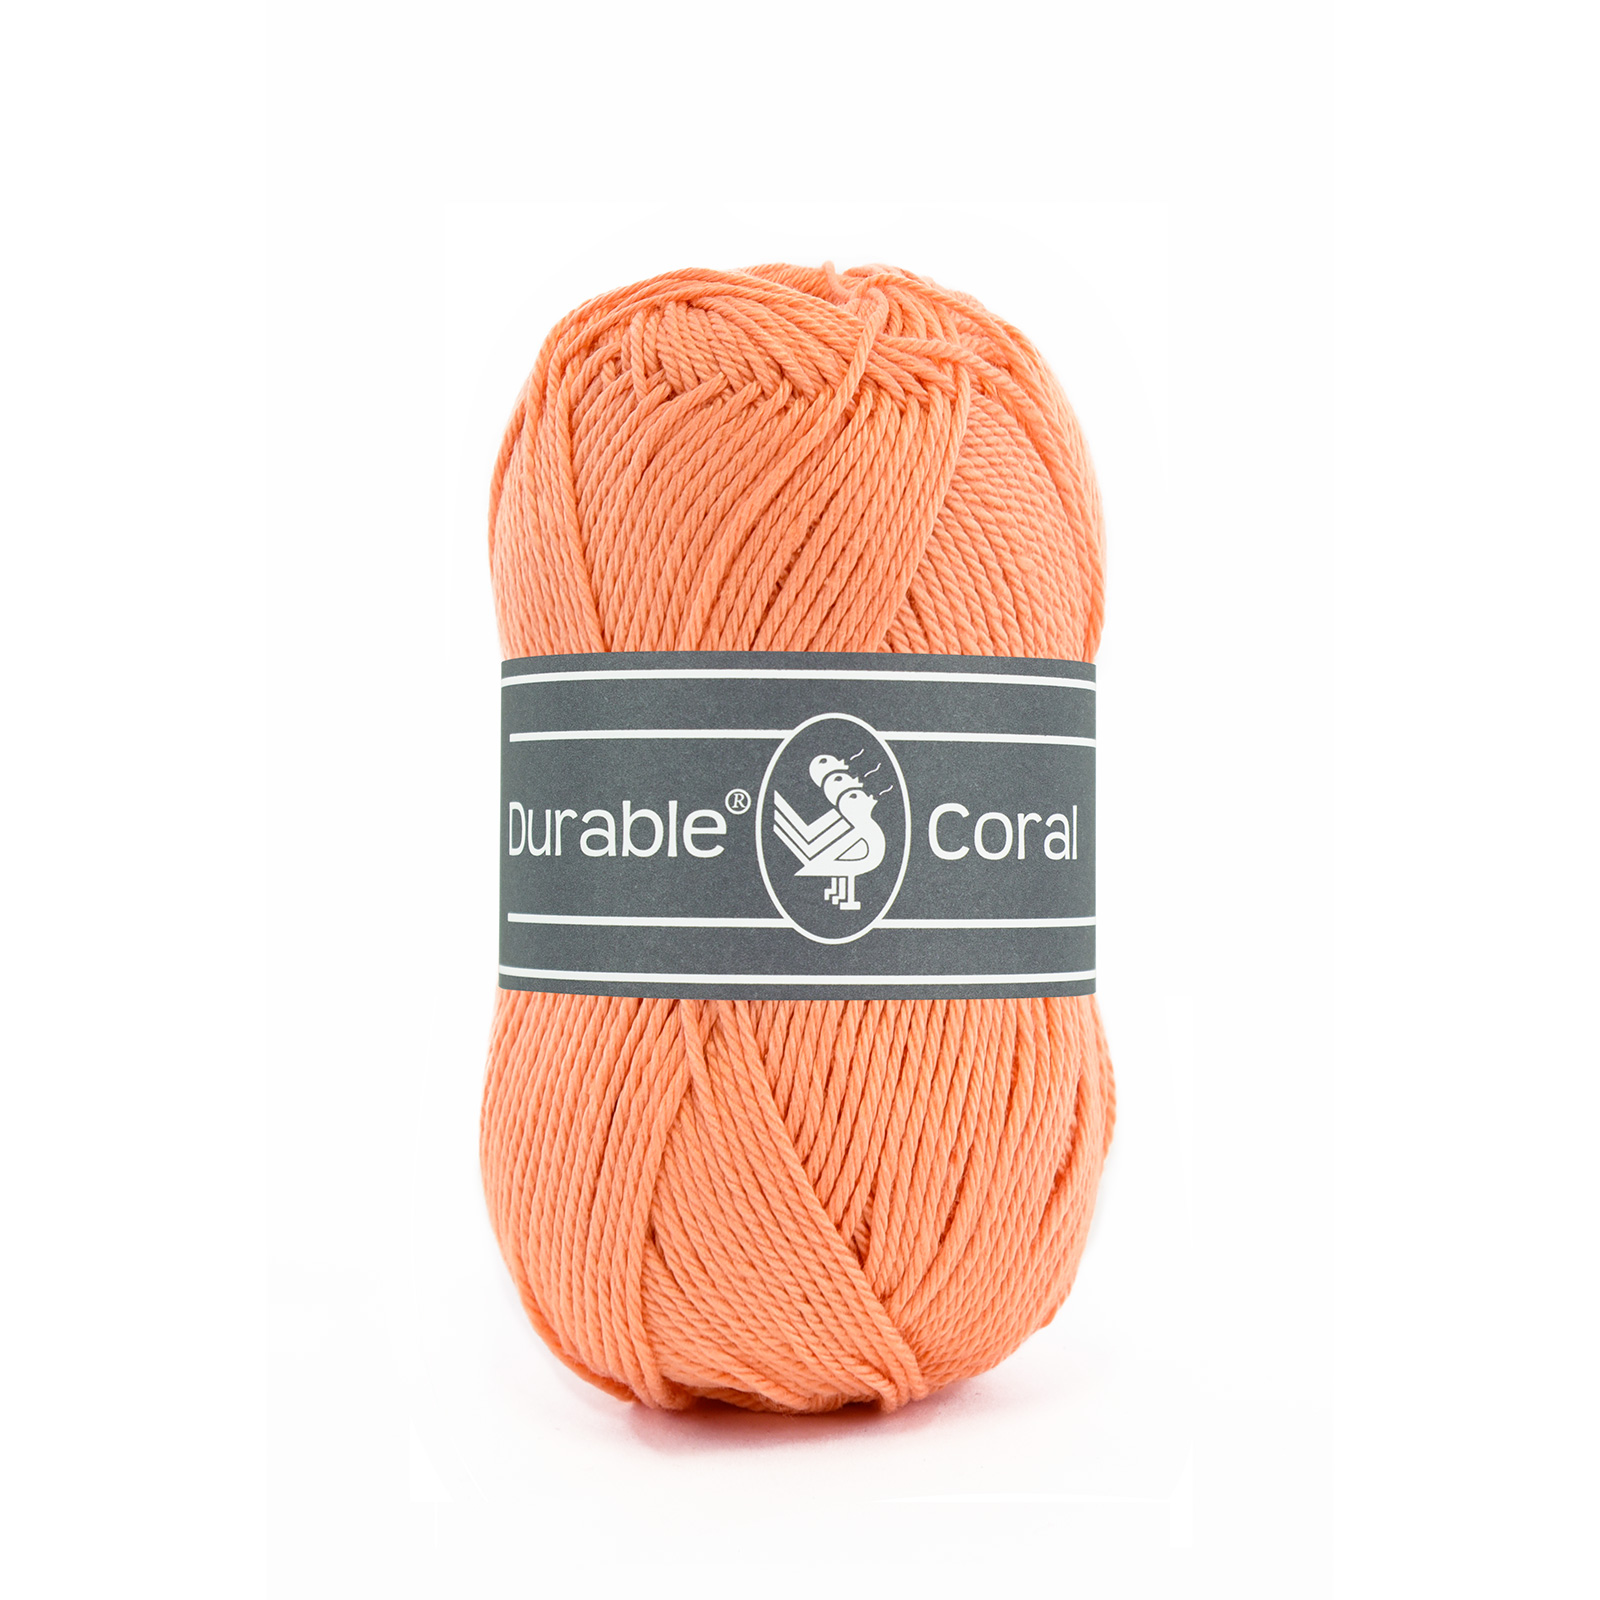 Durable Coral – 2195 Apricot